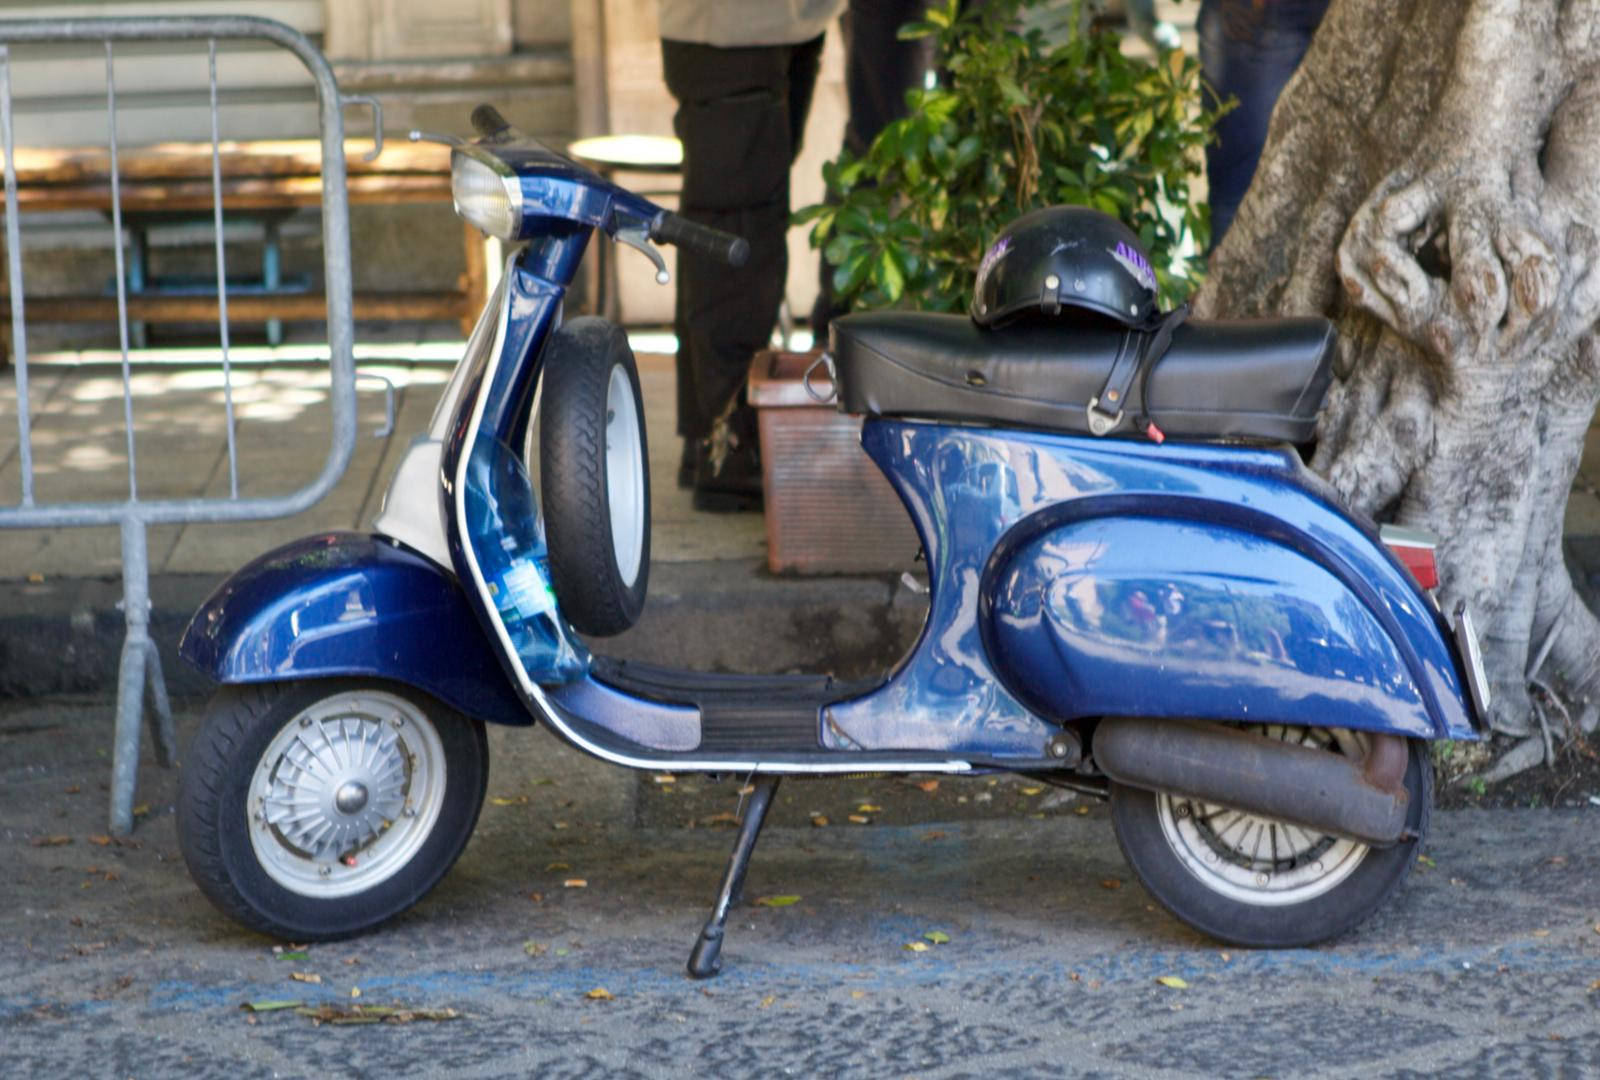 50 Special spotted in Sicily